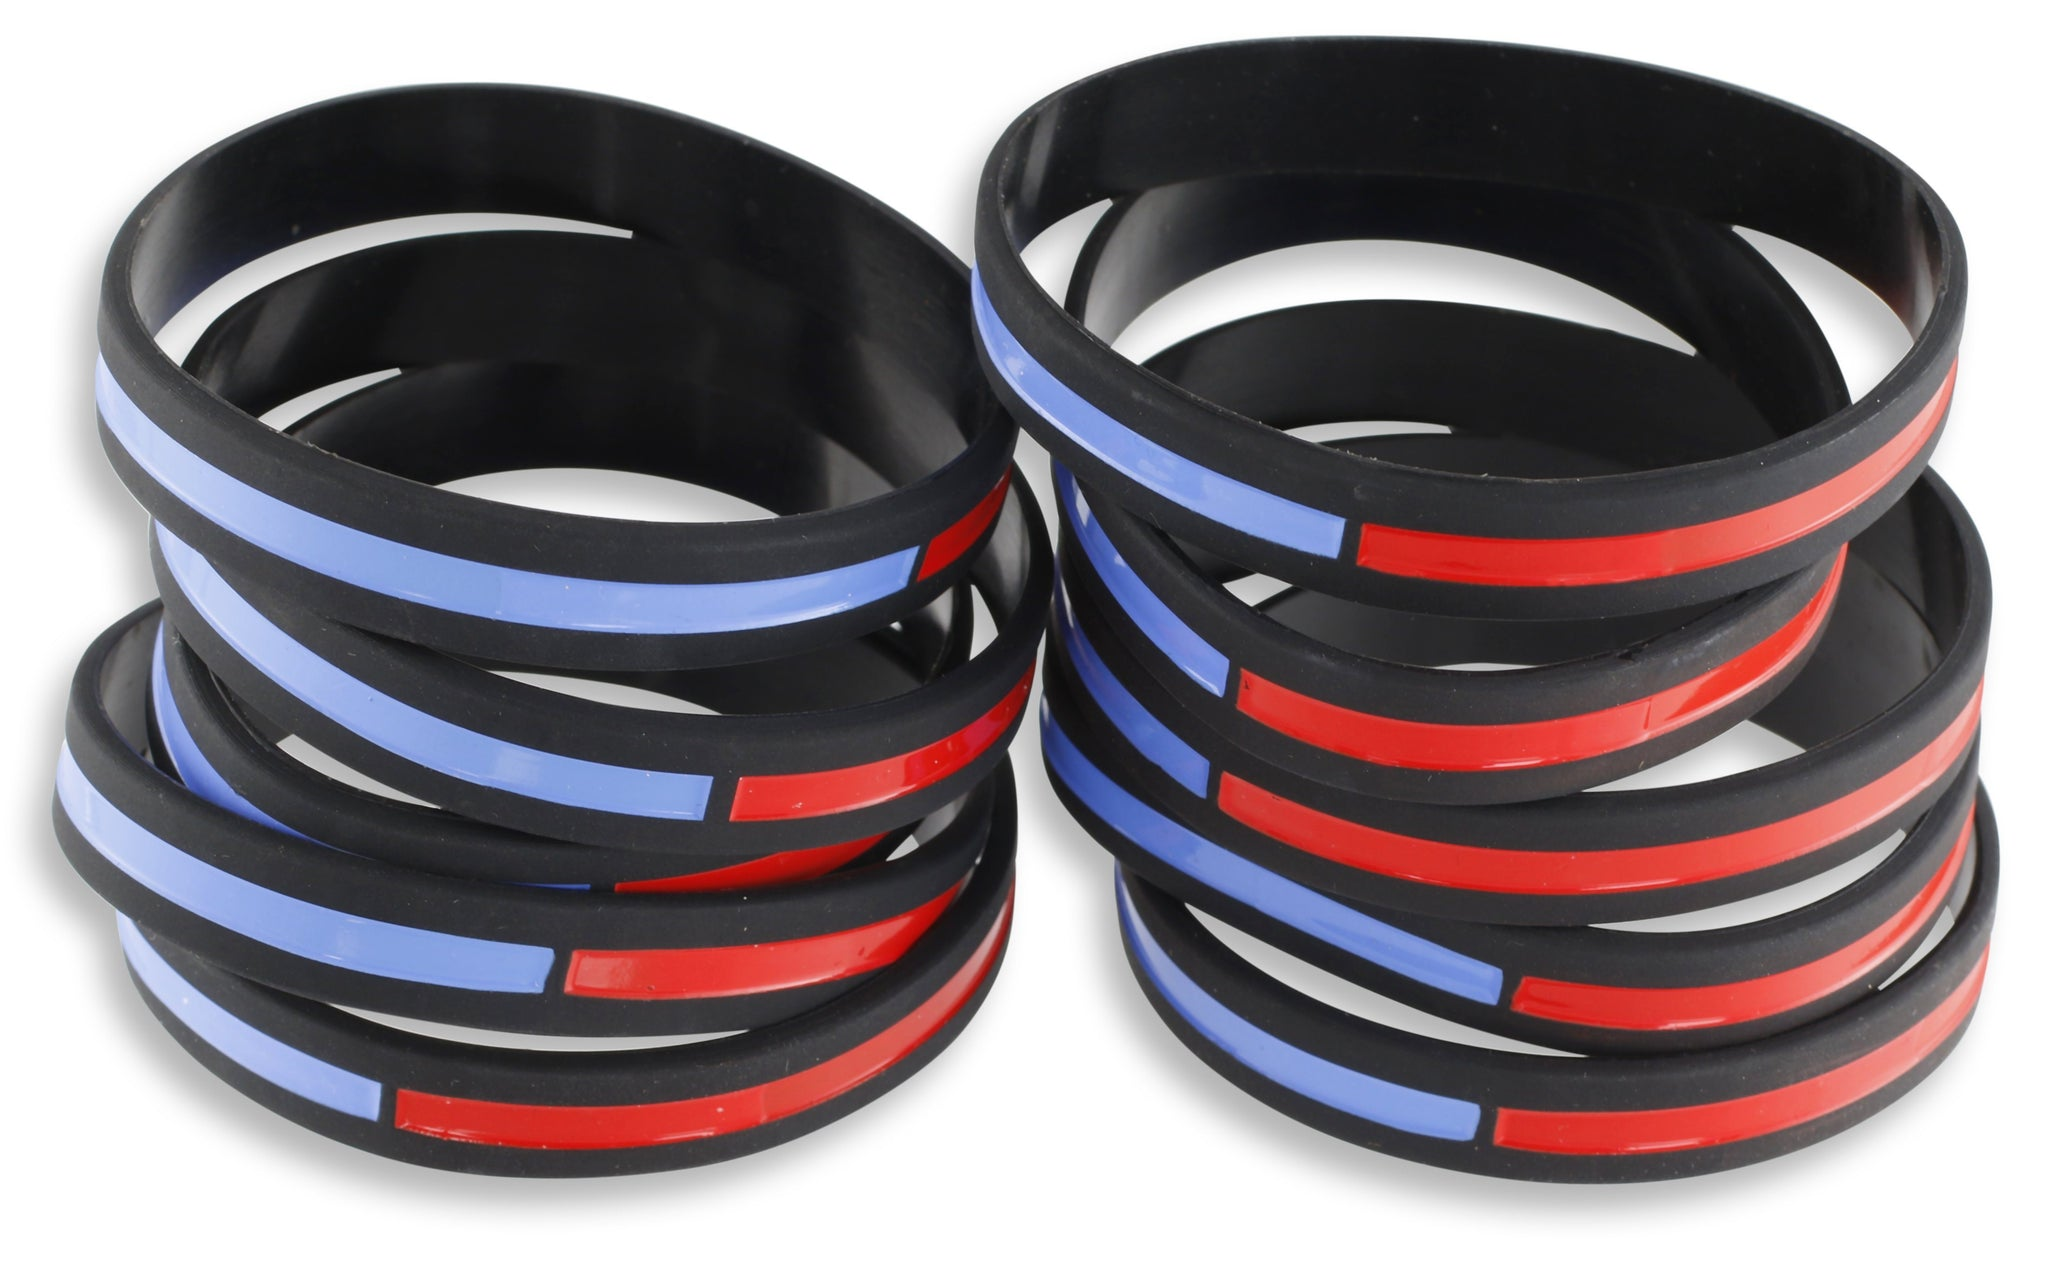 Thin Blue Line x Thin Red Line Combined Silicone Wristbands